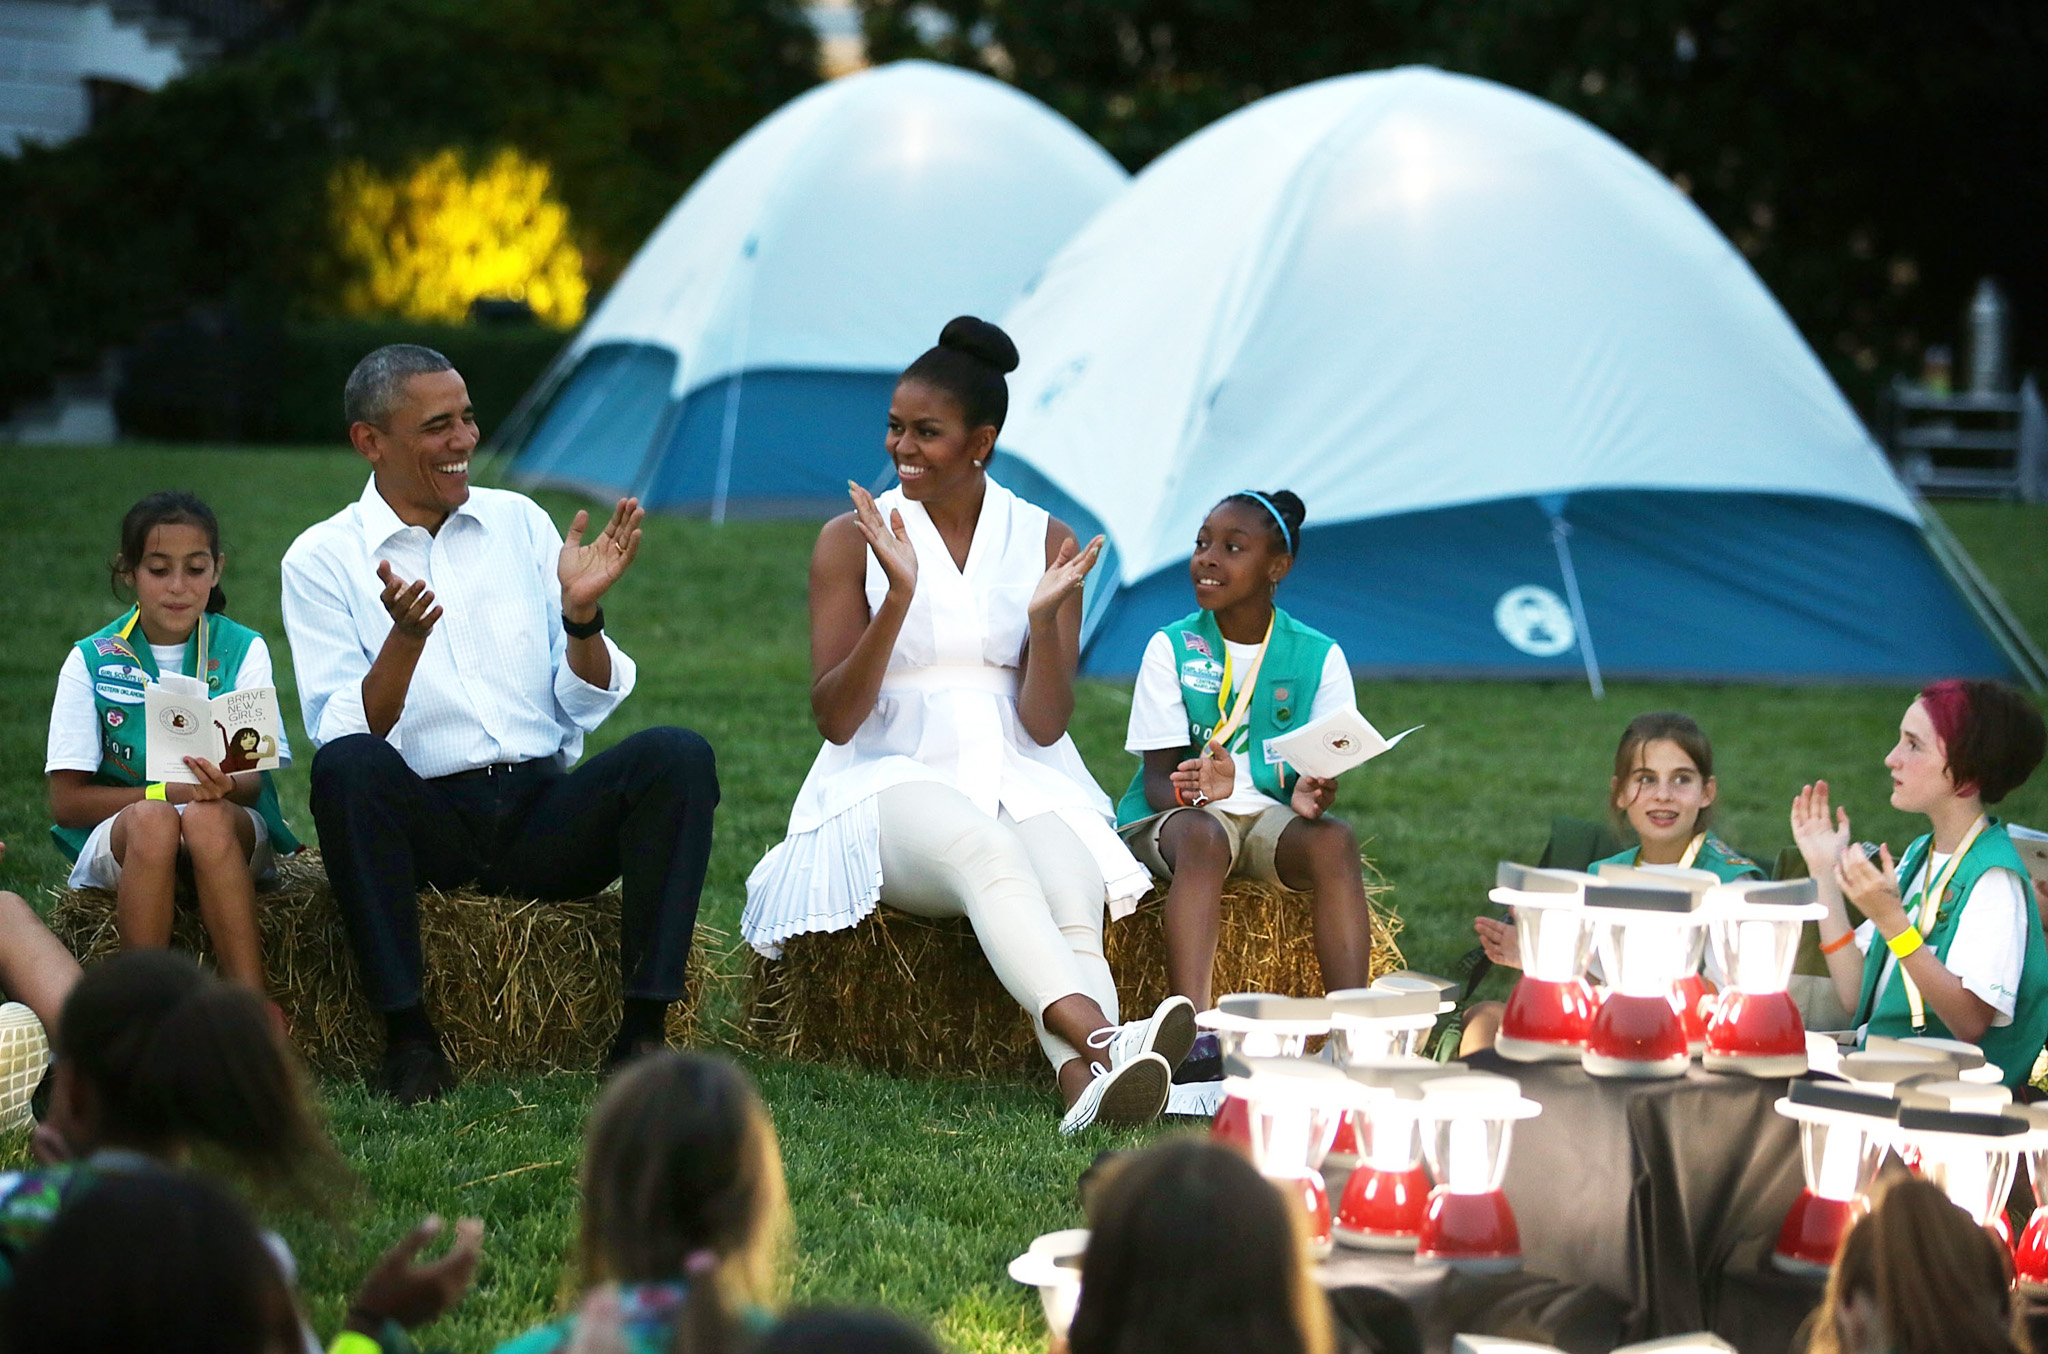 President, First Lady Host Girls Scouts At First-Ever White House Campout...WASHINGTON, DC - JUNE 30:  U.S. President Barack Obama (2nd L) and first lady Michelle Obama (3rd L) particiapte in campfire songs session with fourth-grade Girl Scouts during the first-ever White House Campout June 30, 2015 at South Lawn of the White House in Washington, DC. The first lady hosted the event, as part of her Let's Move! Outside initiative, for Girl Scouts to participate in activities to earn their Camper Badge, and to celebrate the release of the new Girls' Choice Outdoor badges.  (Photo by Alex Wong/Getty Images)